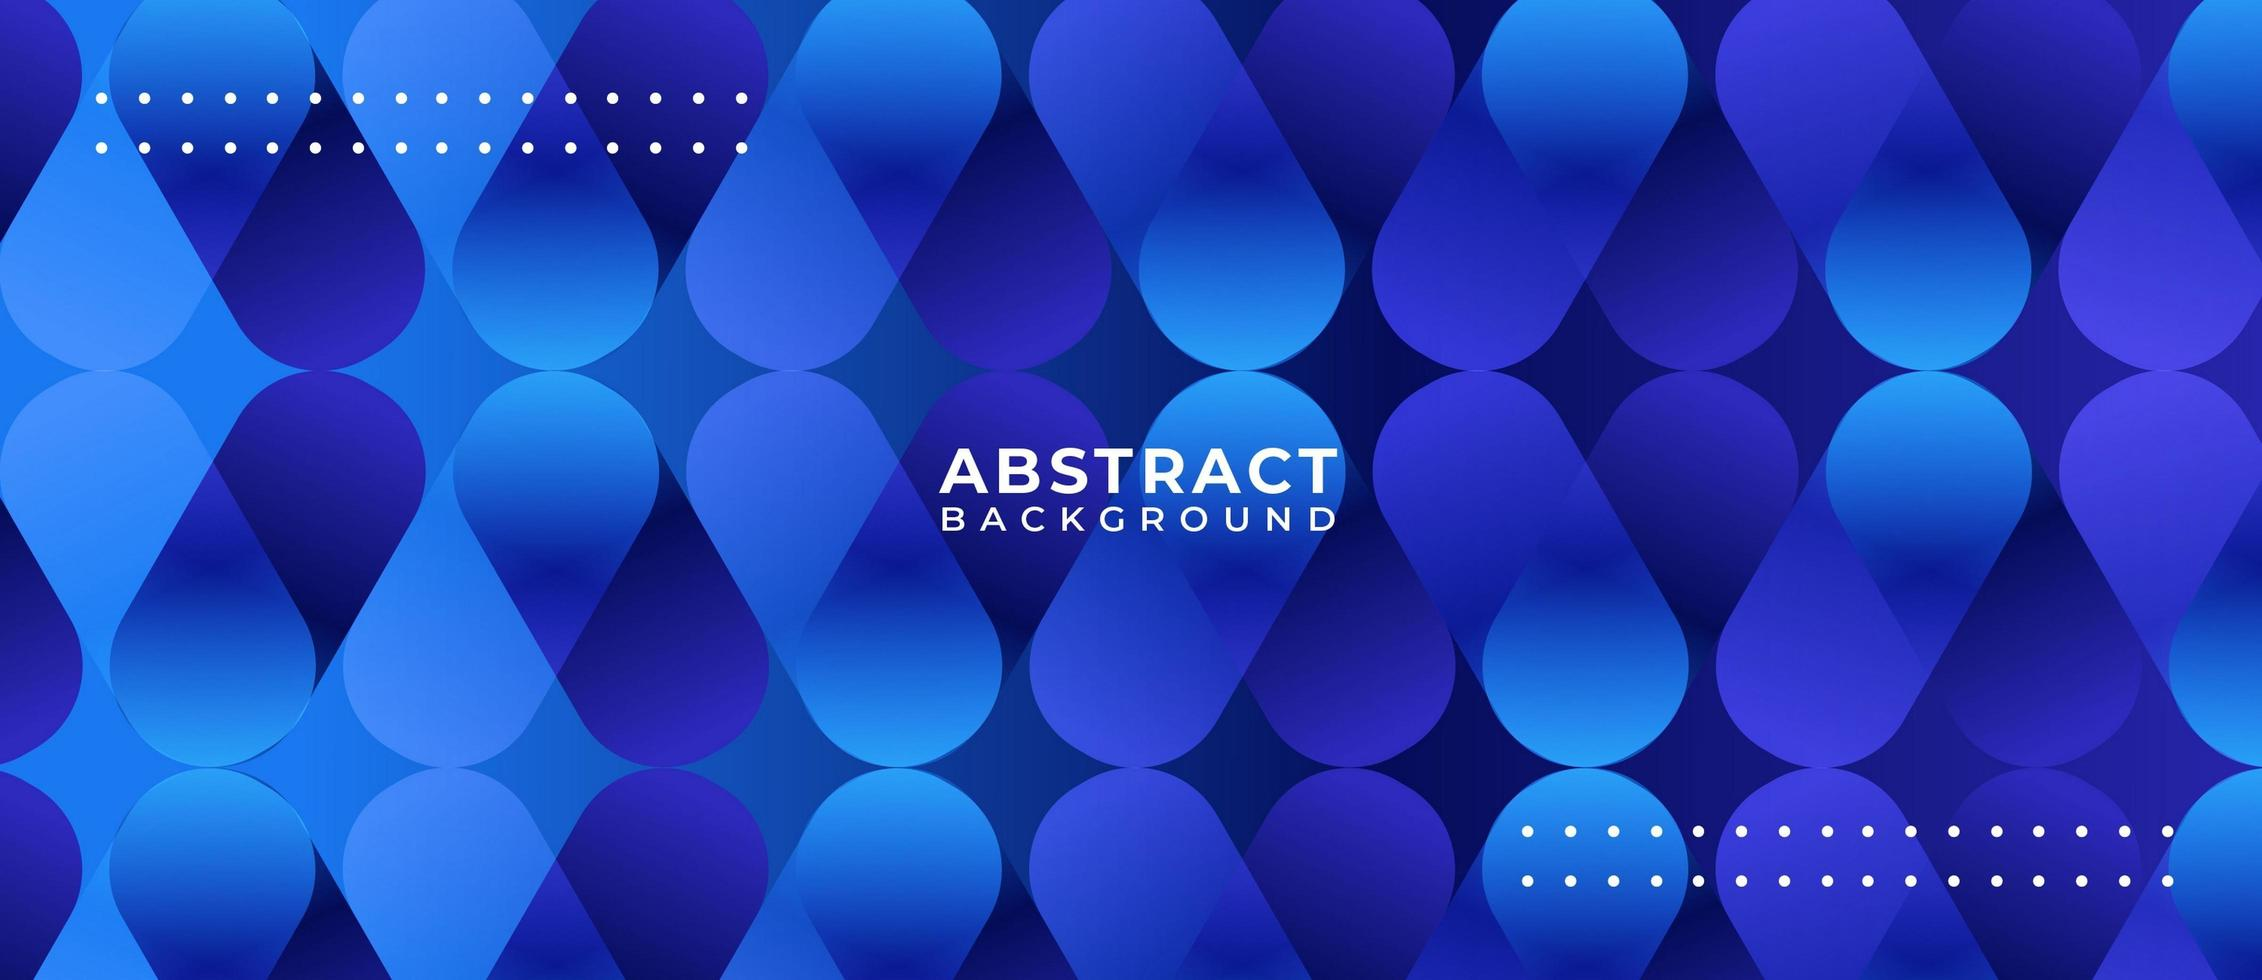 Blue Gradient Capsule Shape Abstract Background vector